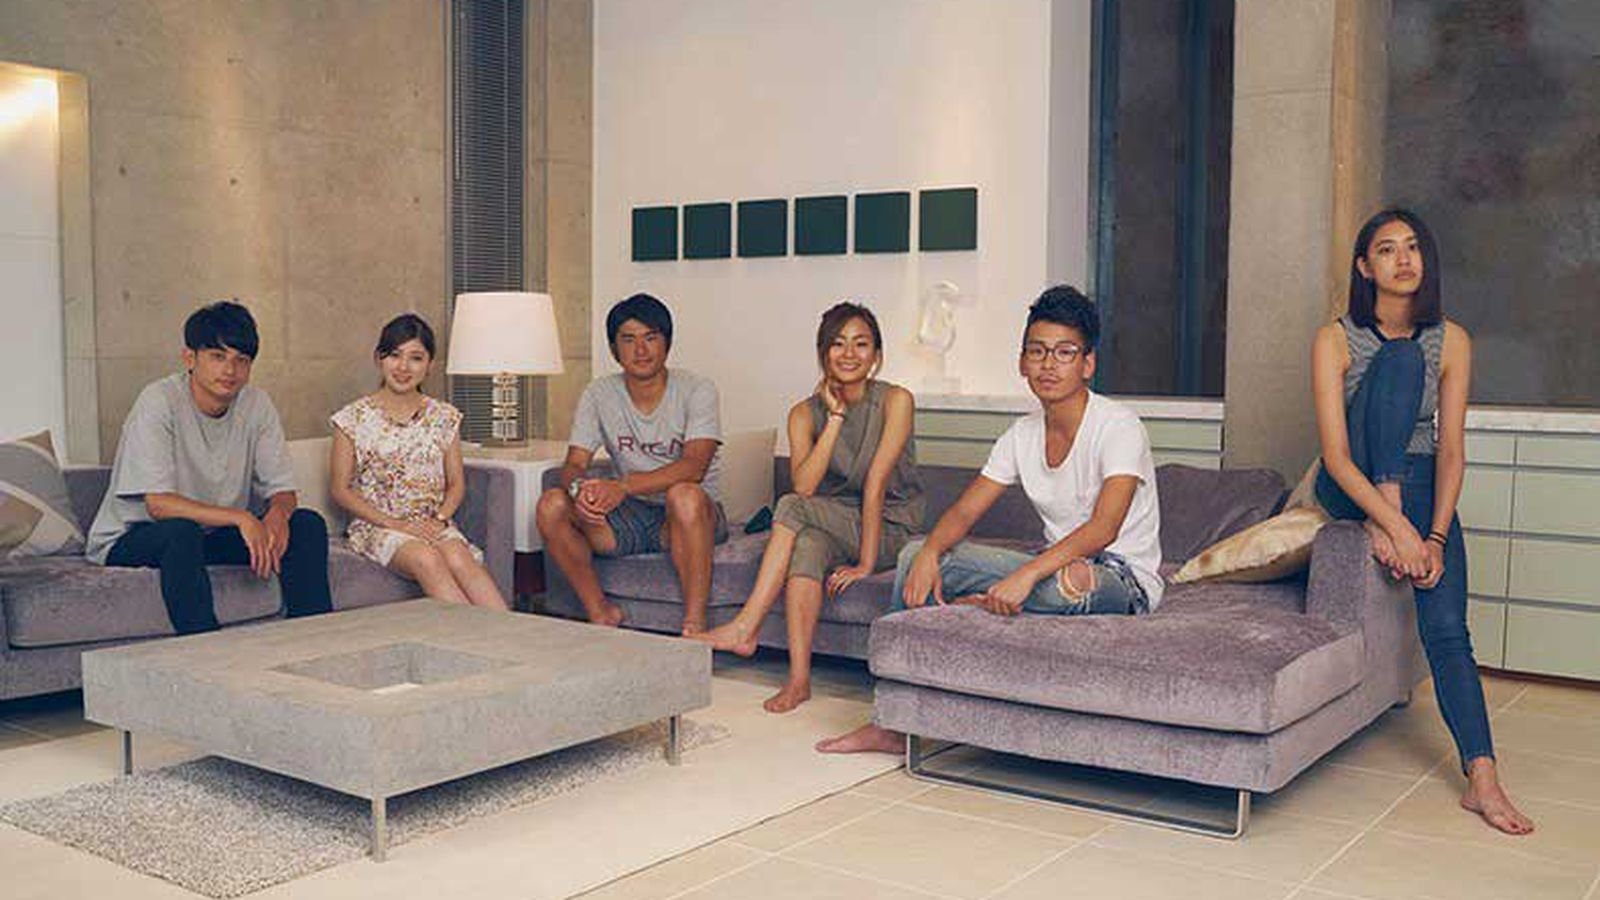 netflix 39 s terrace house finds meaning in mundane human On terrace house season 2 netflix